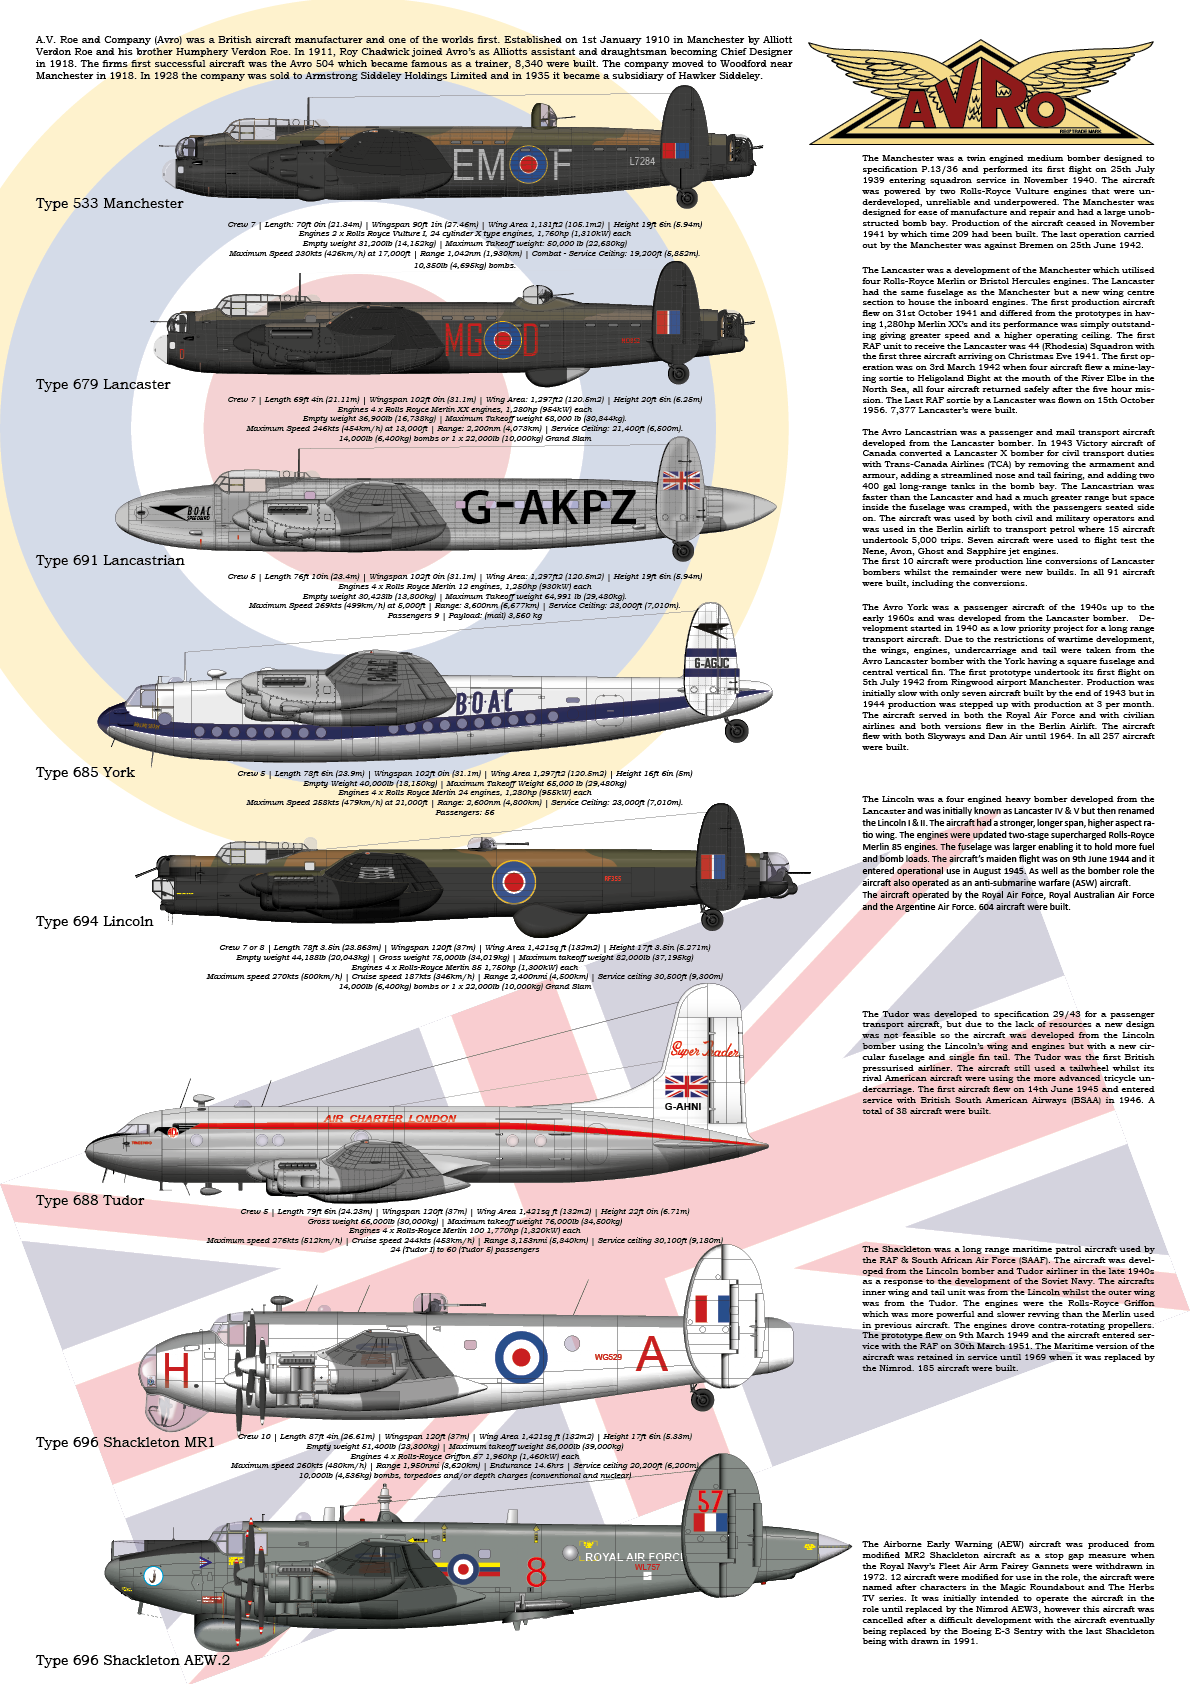 Avro Lancaster family of aircraft